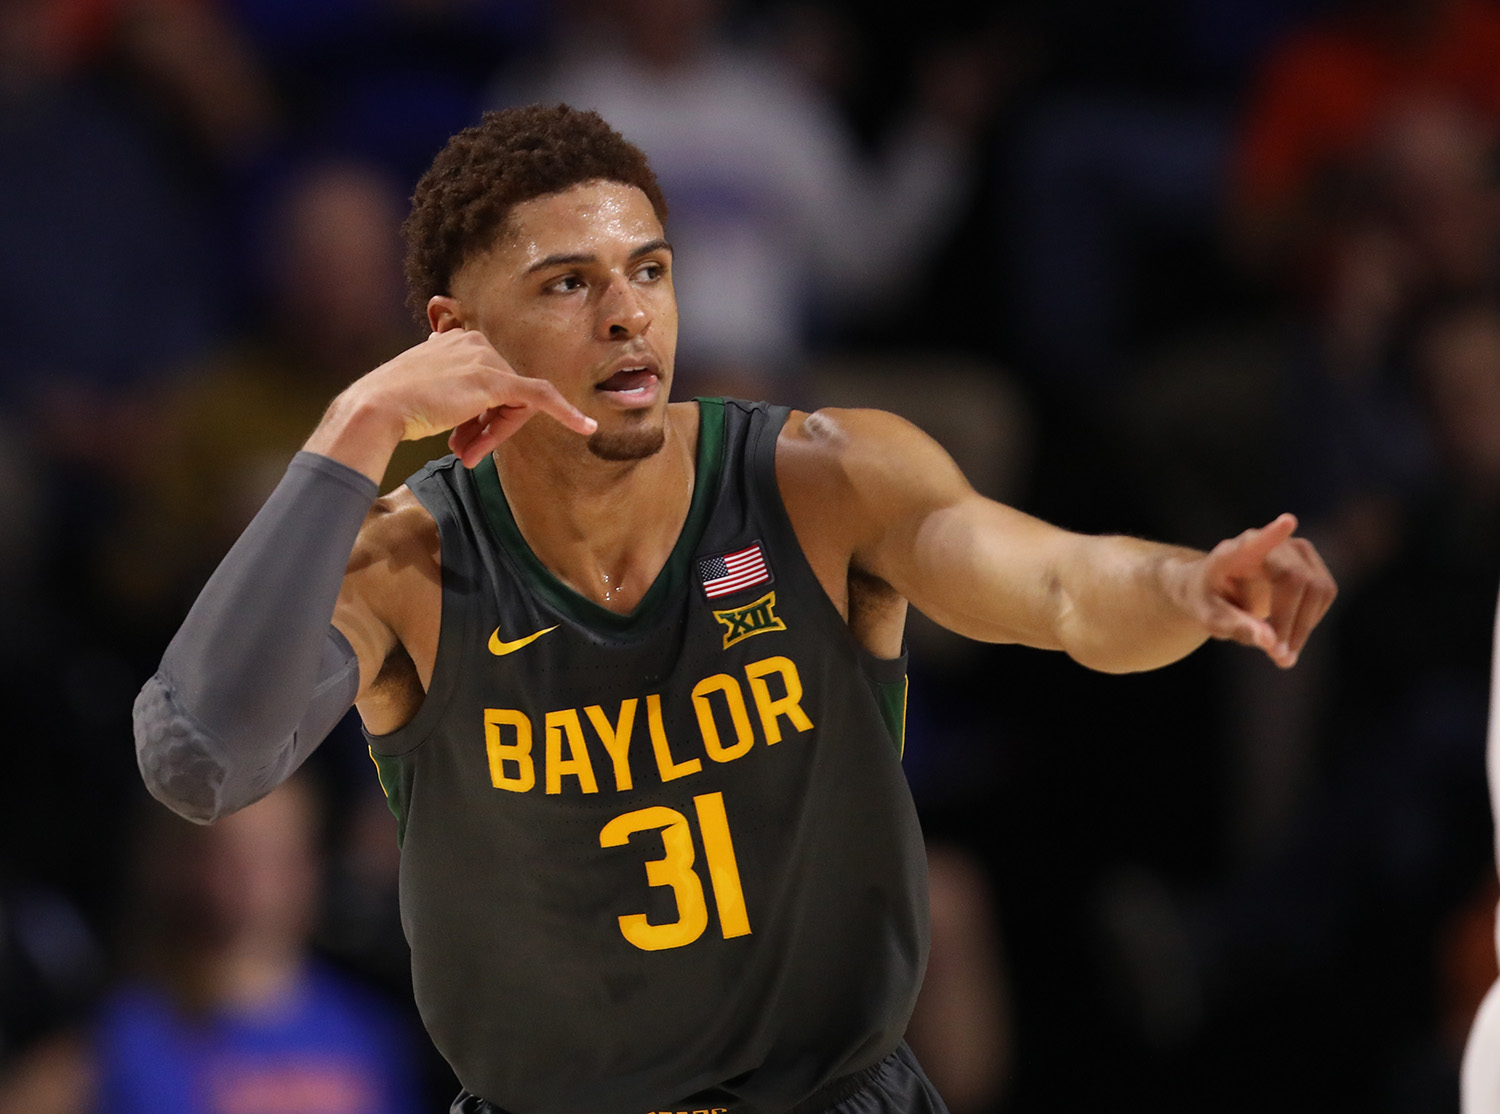 Baylor guard MaCio Teague (31) celebrates after making a three against Florida during the first half of an NCAA college basketball game Saturday, Jan. 25, 2020, in Gainesville, Fla. (AP Photo/Matt Stamey)